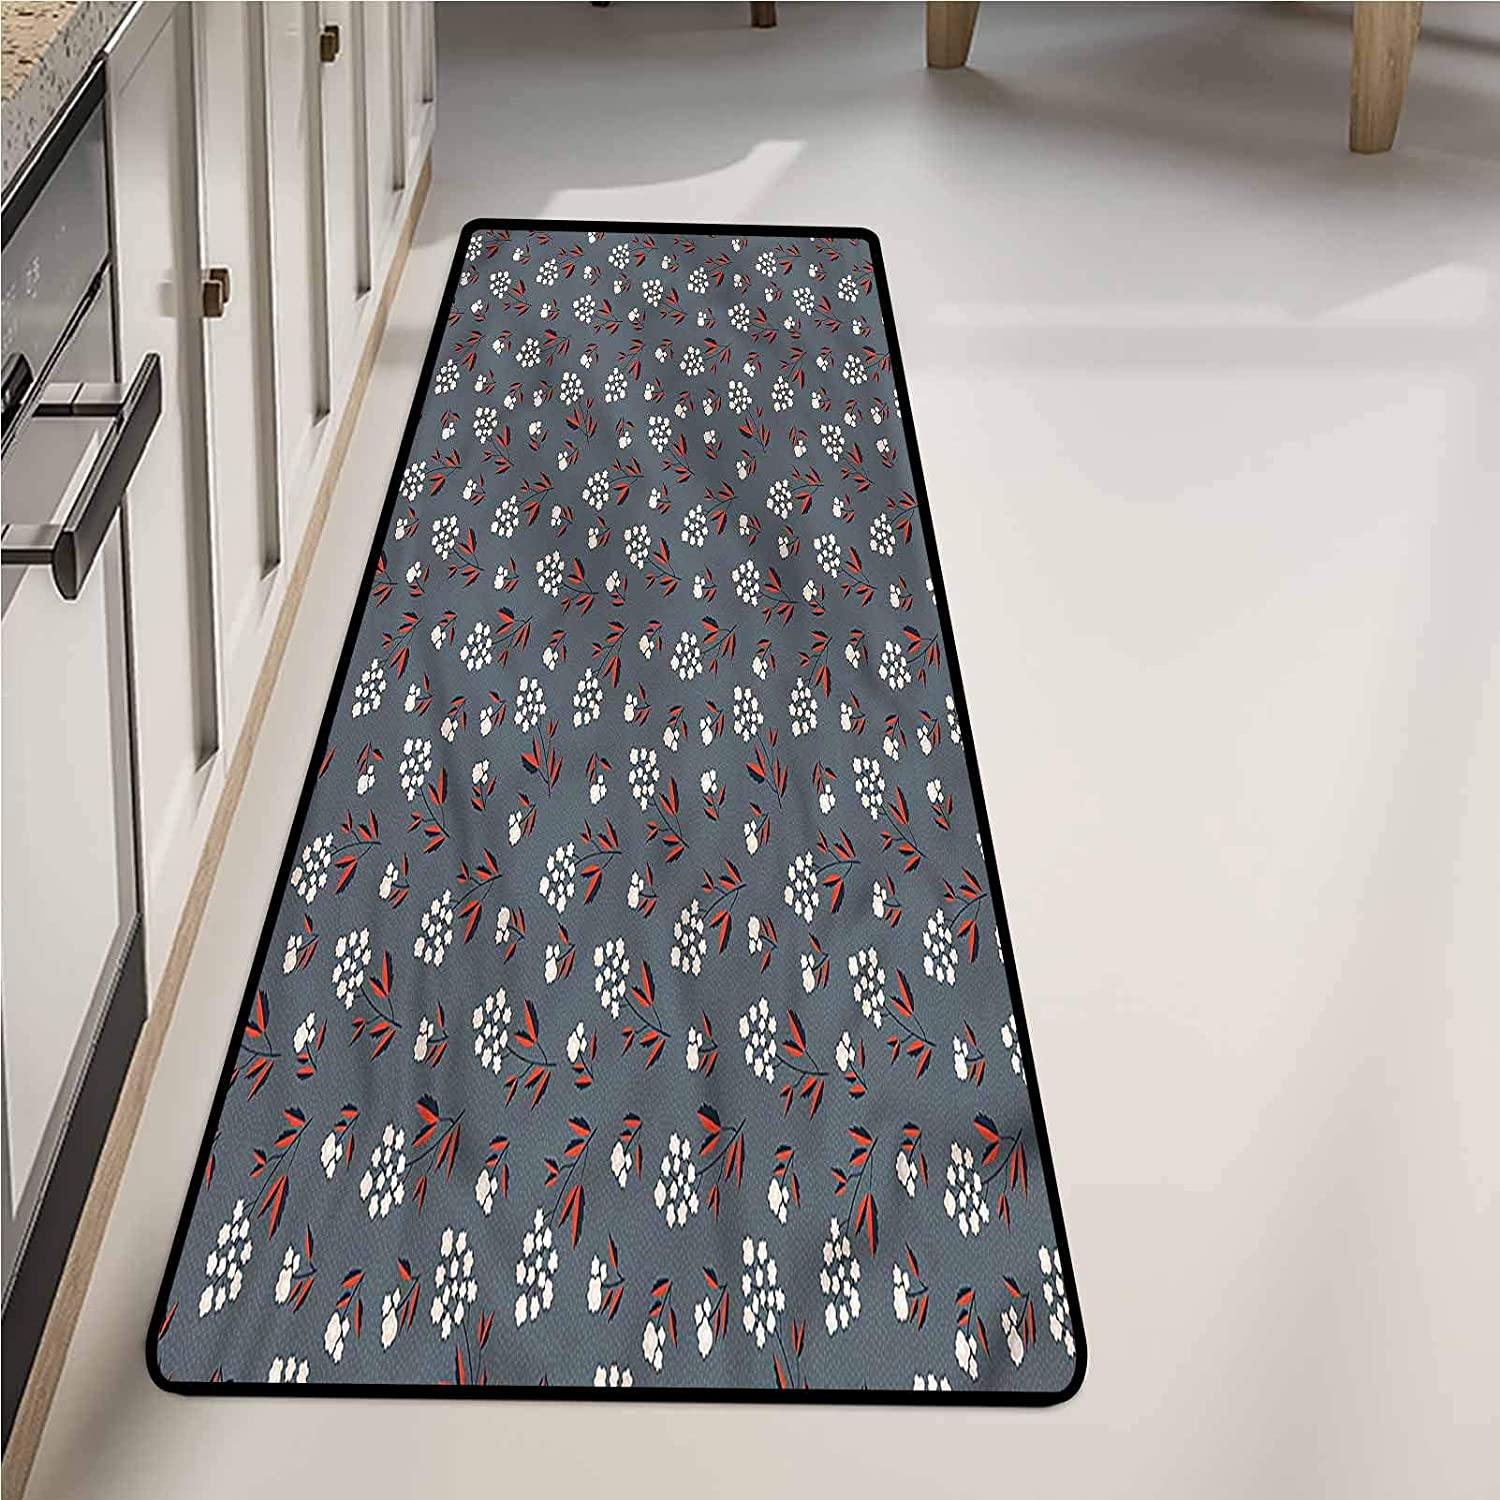 Kitchen Runner Rug 20 x 59 Inch, Floral Japanese Cherry Blooms Washable Area Rugs